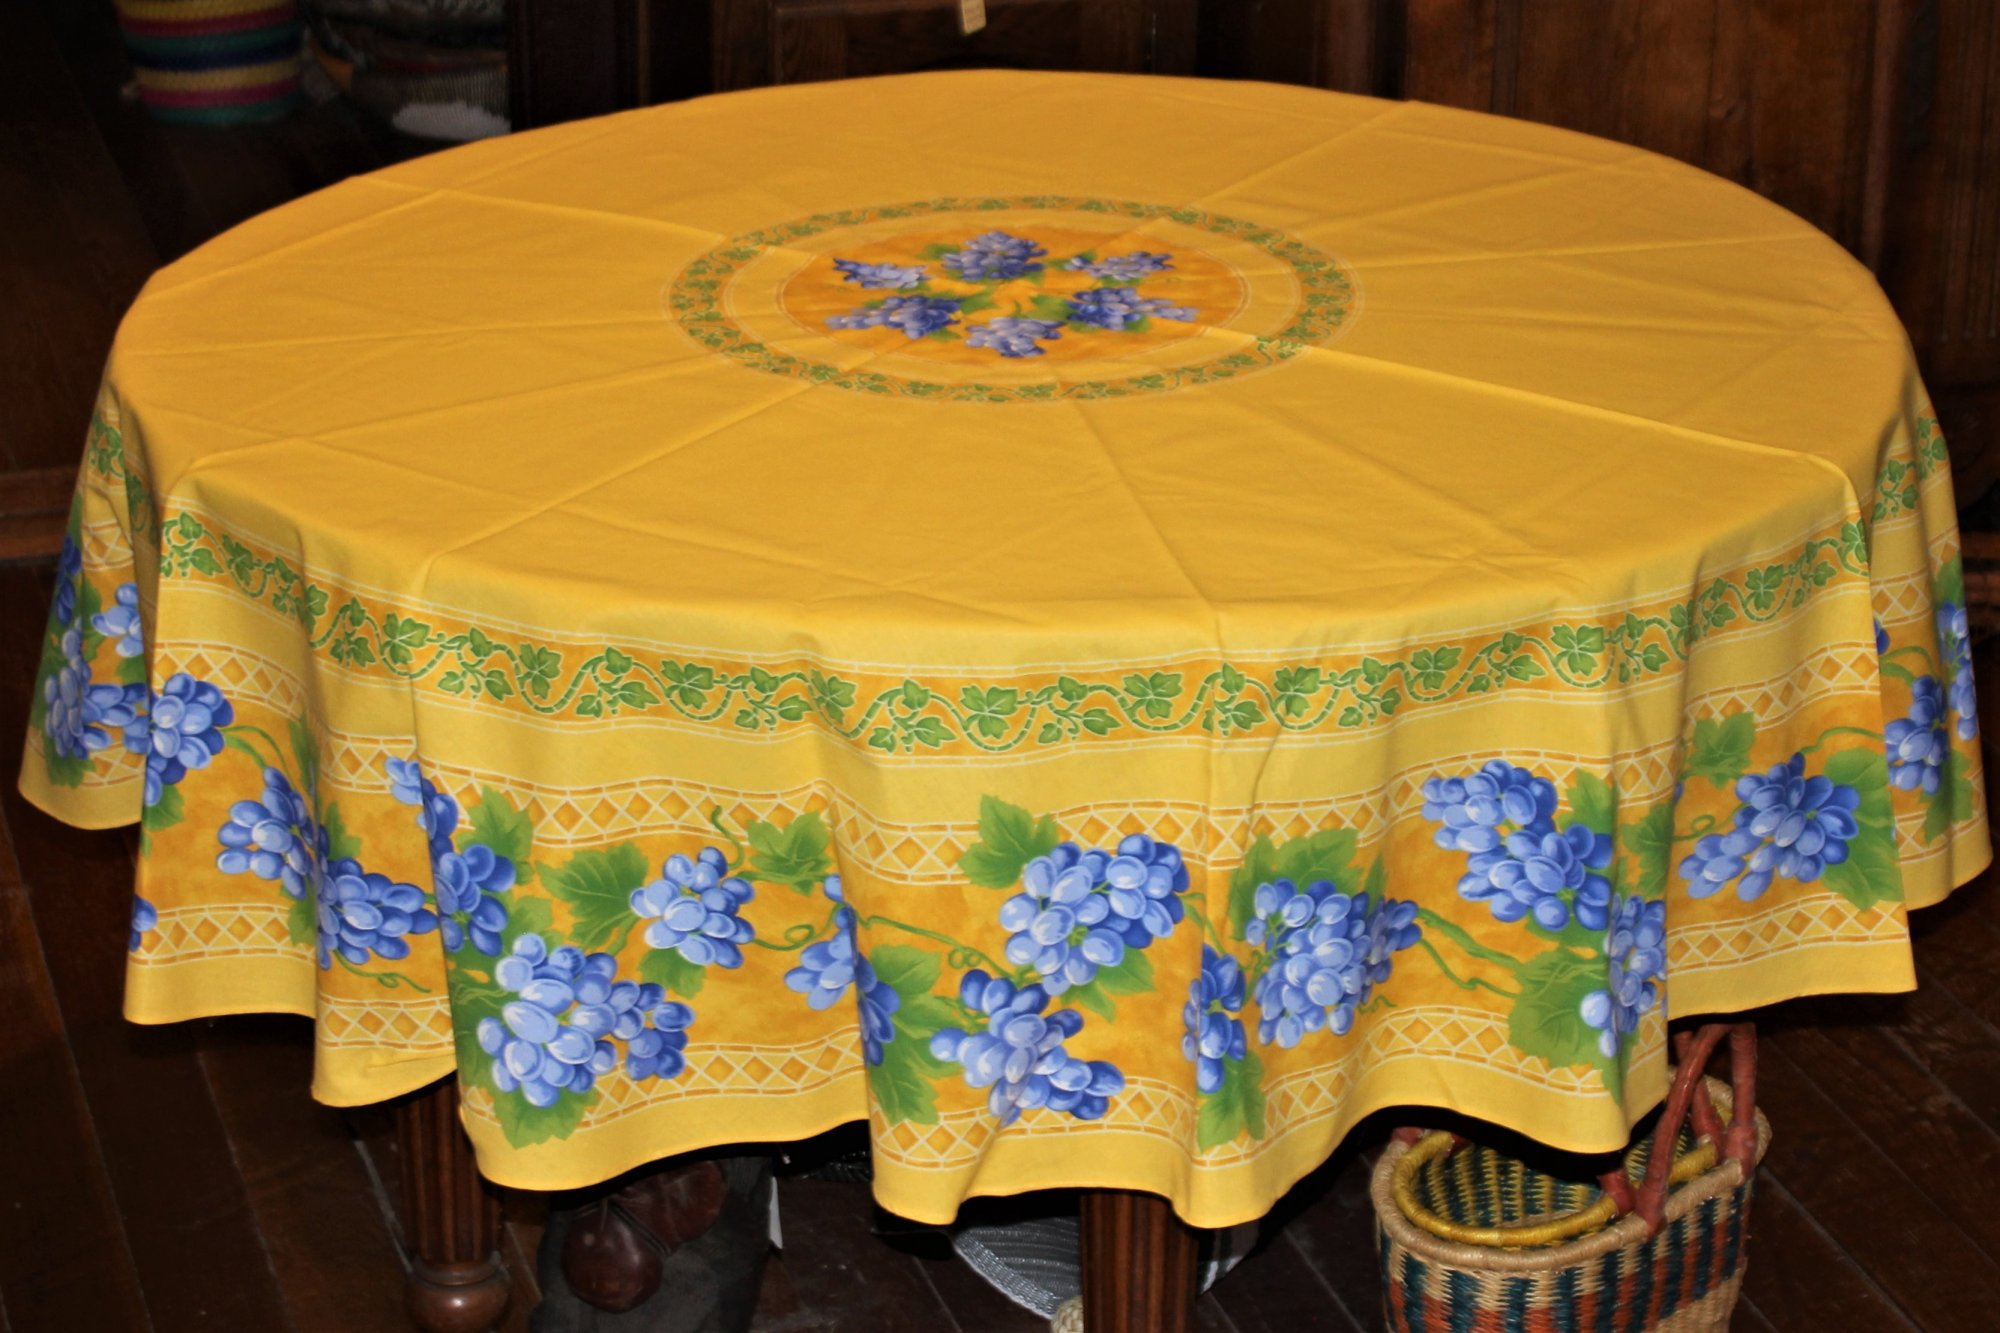 70 French Acrylic-Coated Round Tablecloth Grapes (Yellow)